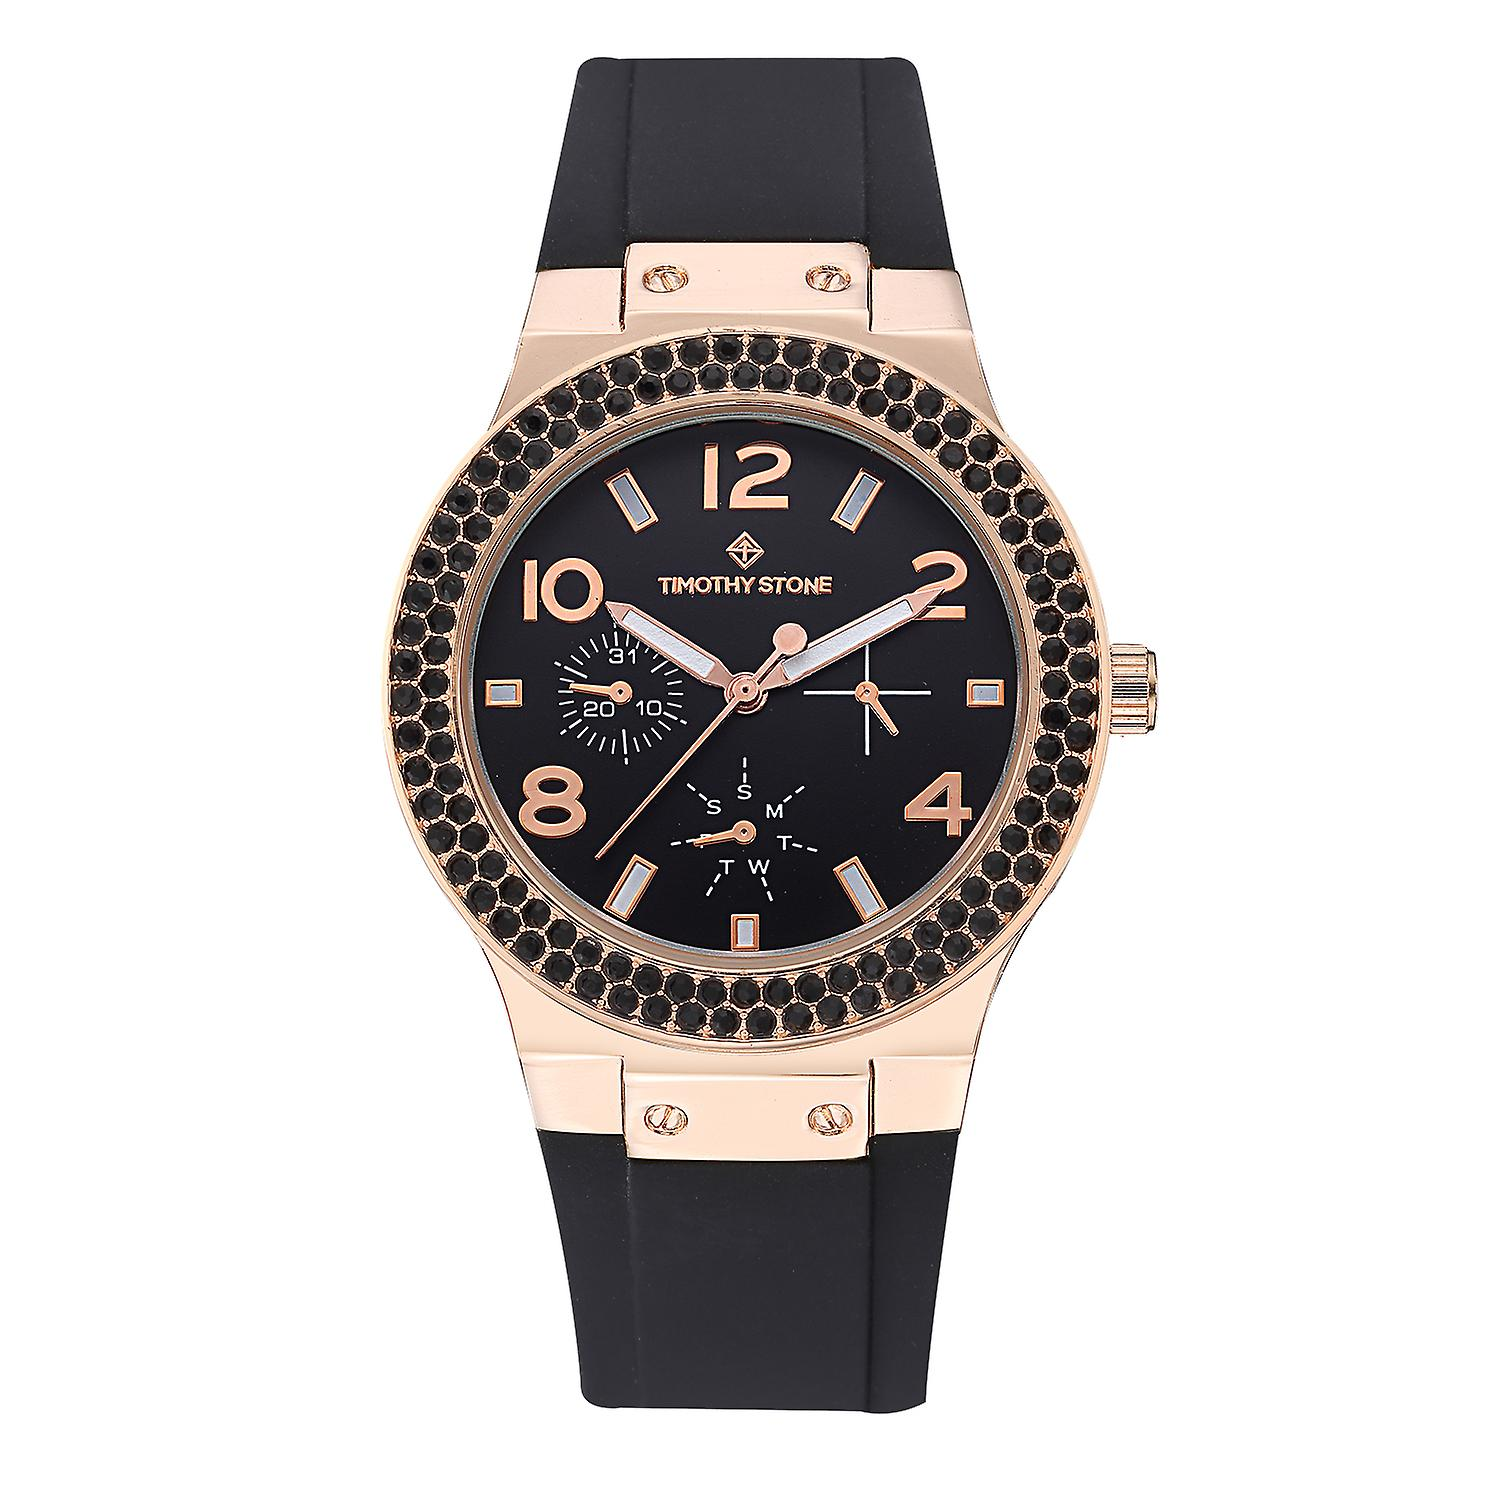 Timothy Stone Women's FA�ON-SPORT Rose Gold-Tone and Black Strap Watch